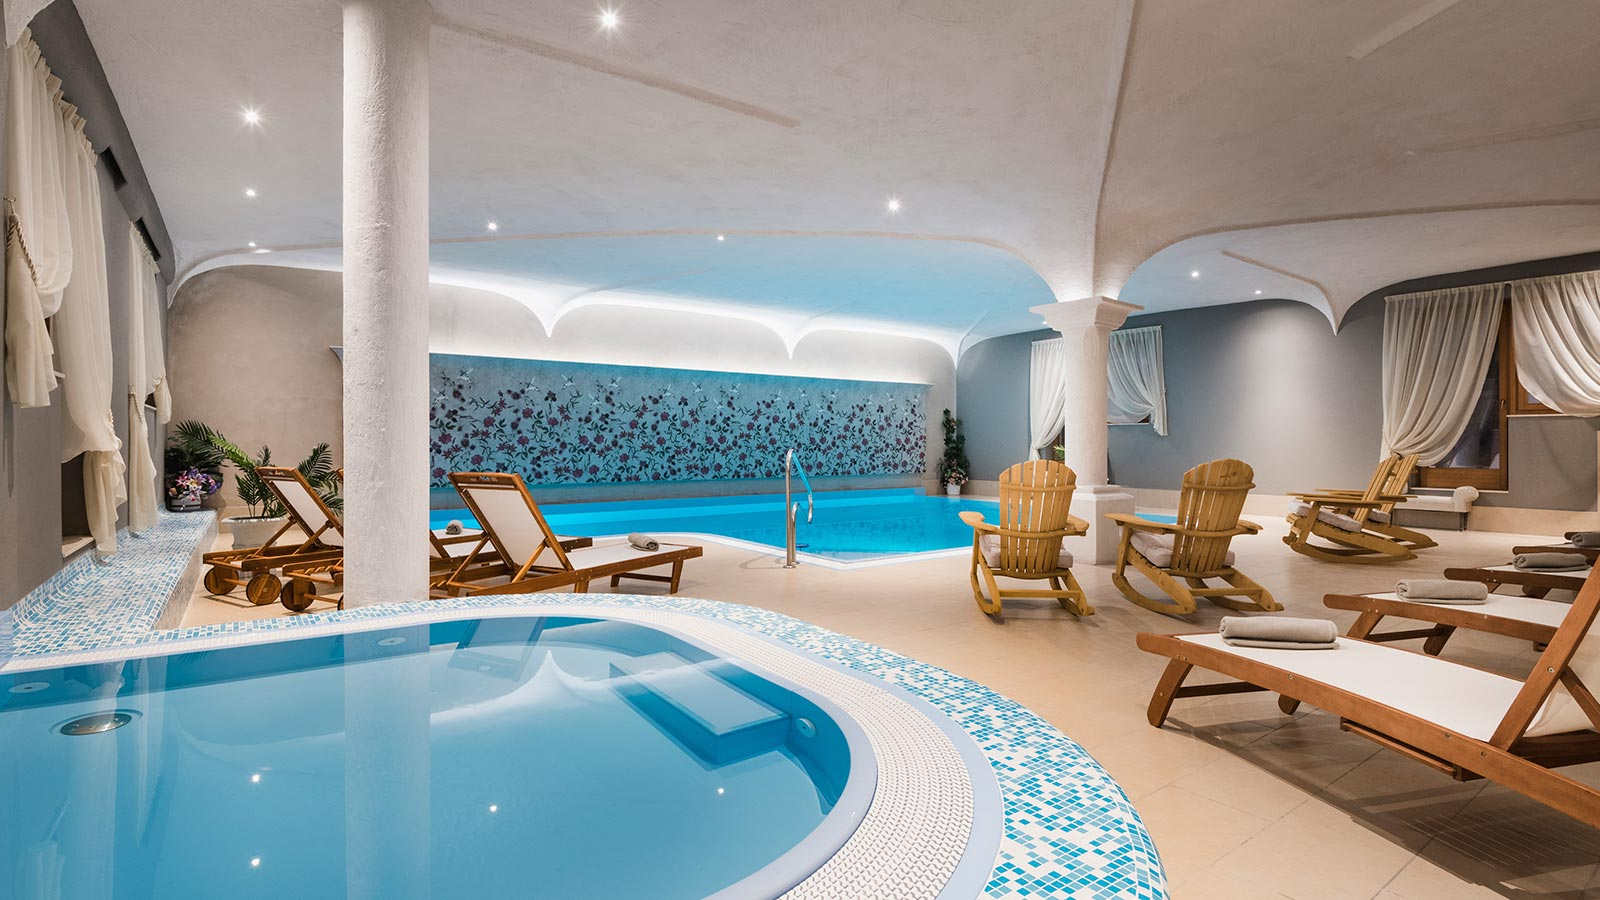 The indoor swimming pool with deckchairs and sunbeds of our wellness hotel in the Dolomites